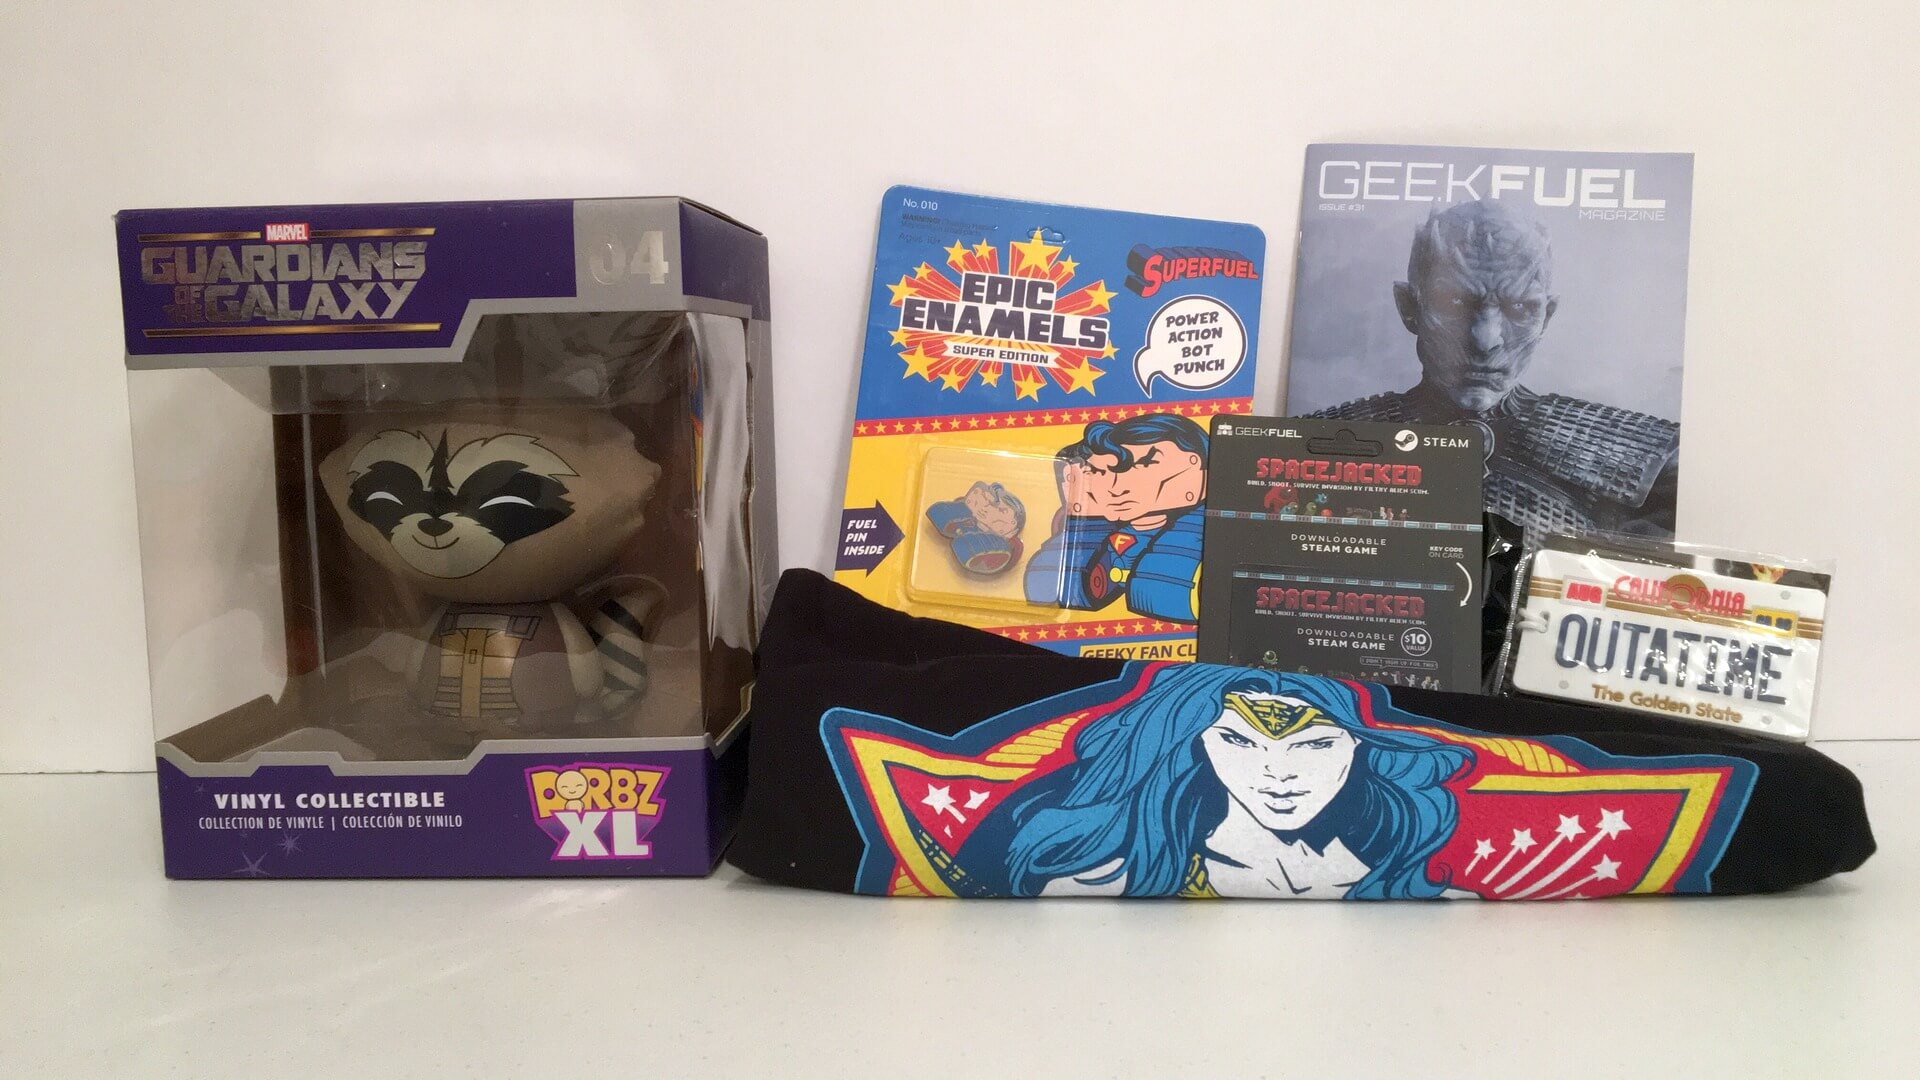 Geek Fuel:  An Extra Large Edition of Geeky Goodness - Review